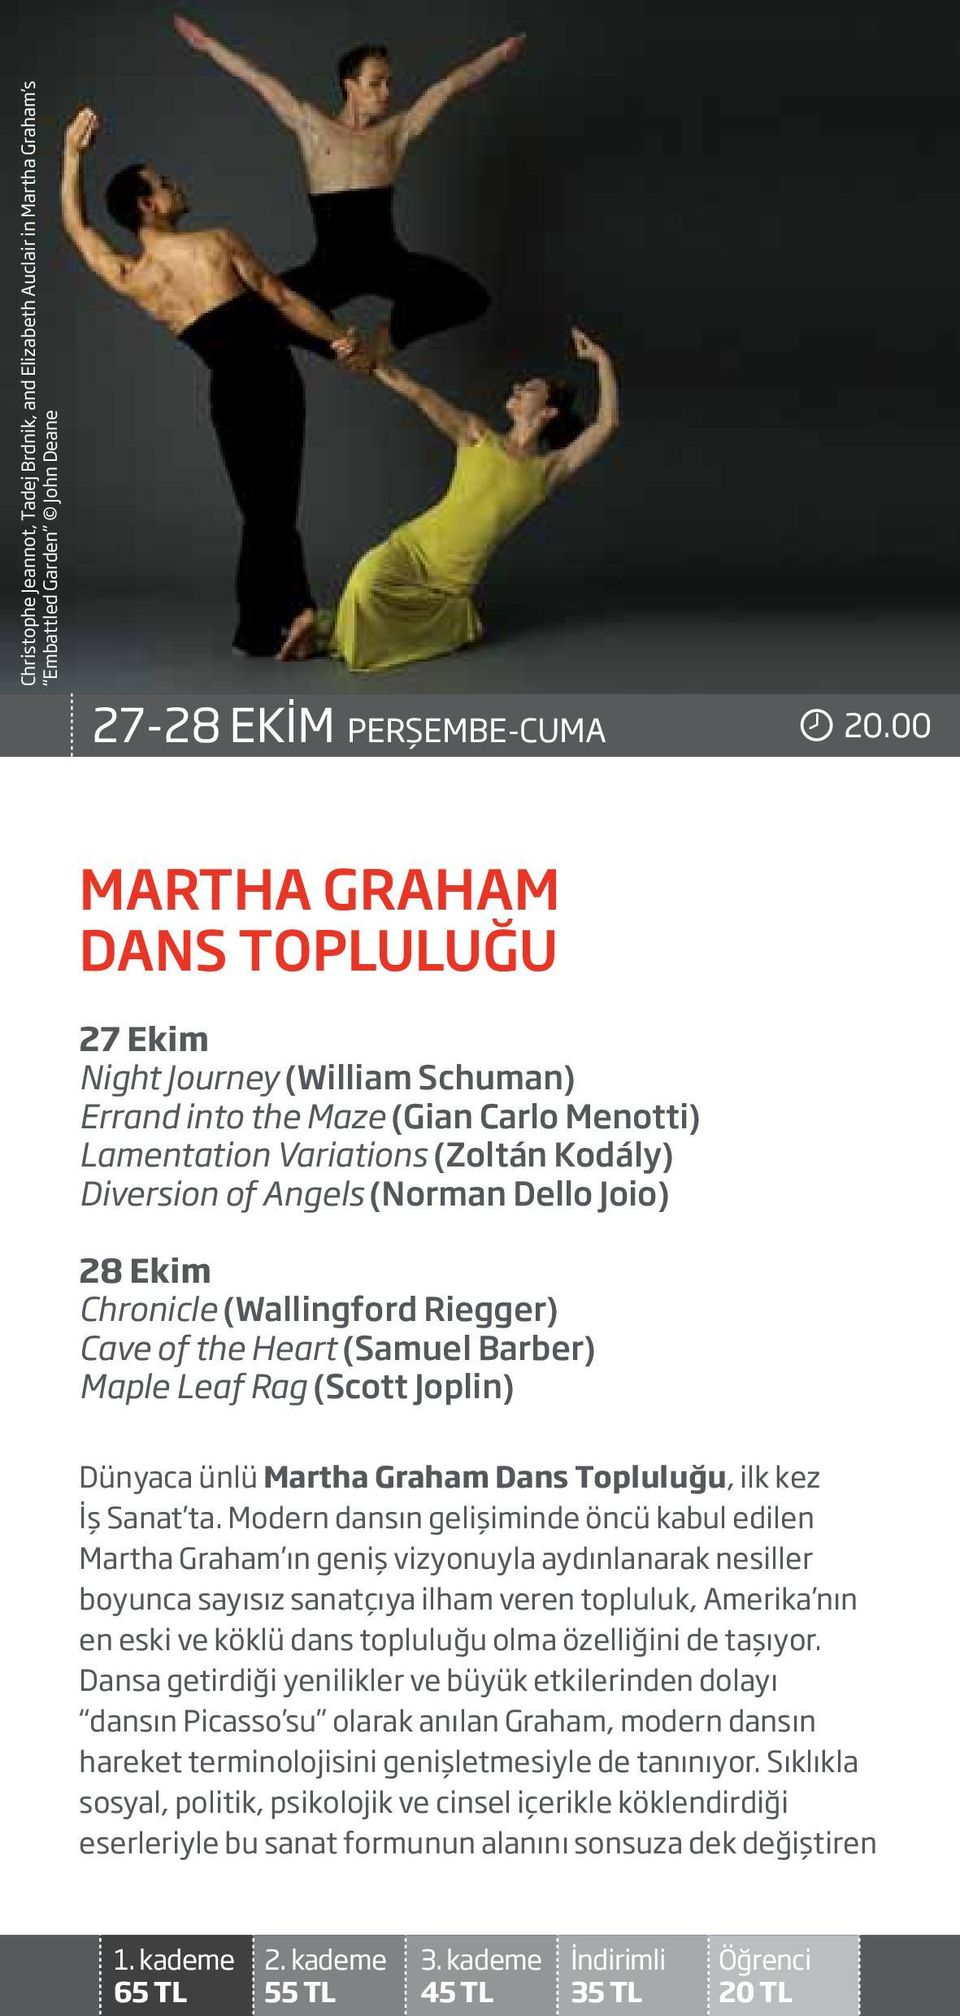 Ekim Chronicle (Wallingford Riegger) Cave of the Heart (Samuel Barber) Maple Leaf Rag (Scott Joplin) Dünyaca ünlü Martha Graham Dans Topluluğu, ilk kez İş Sanat ta.